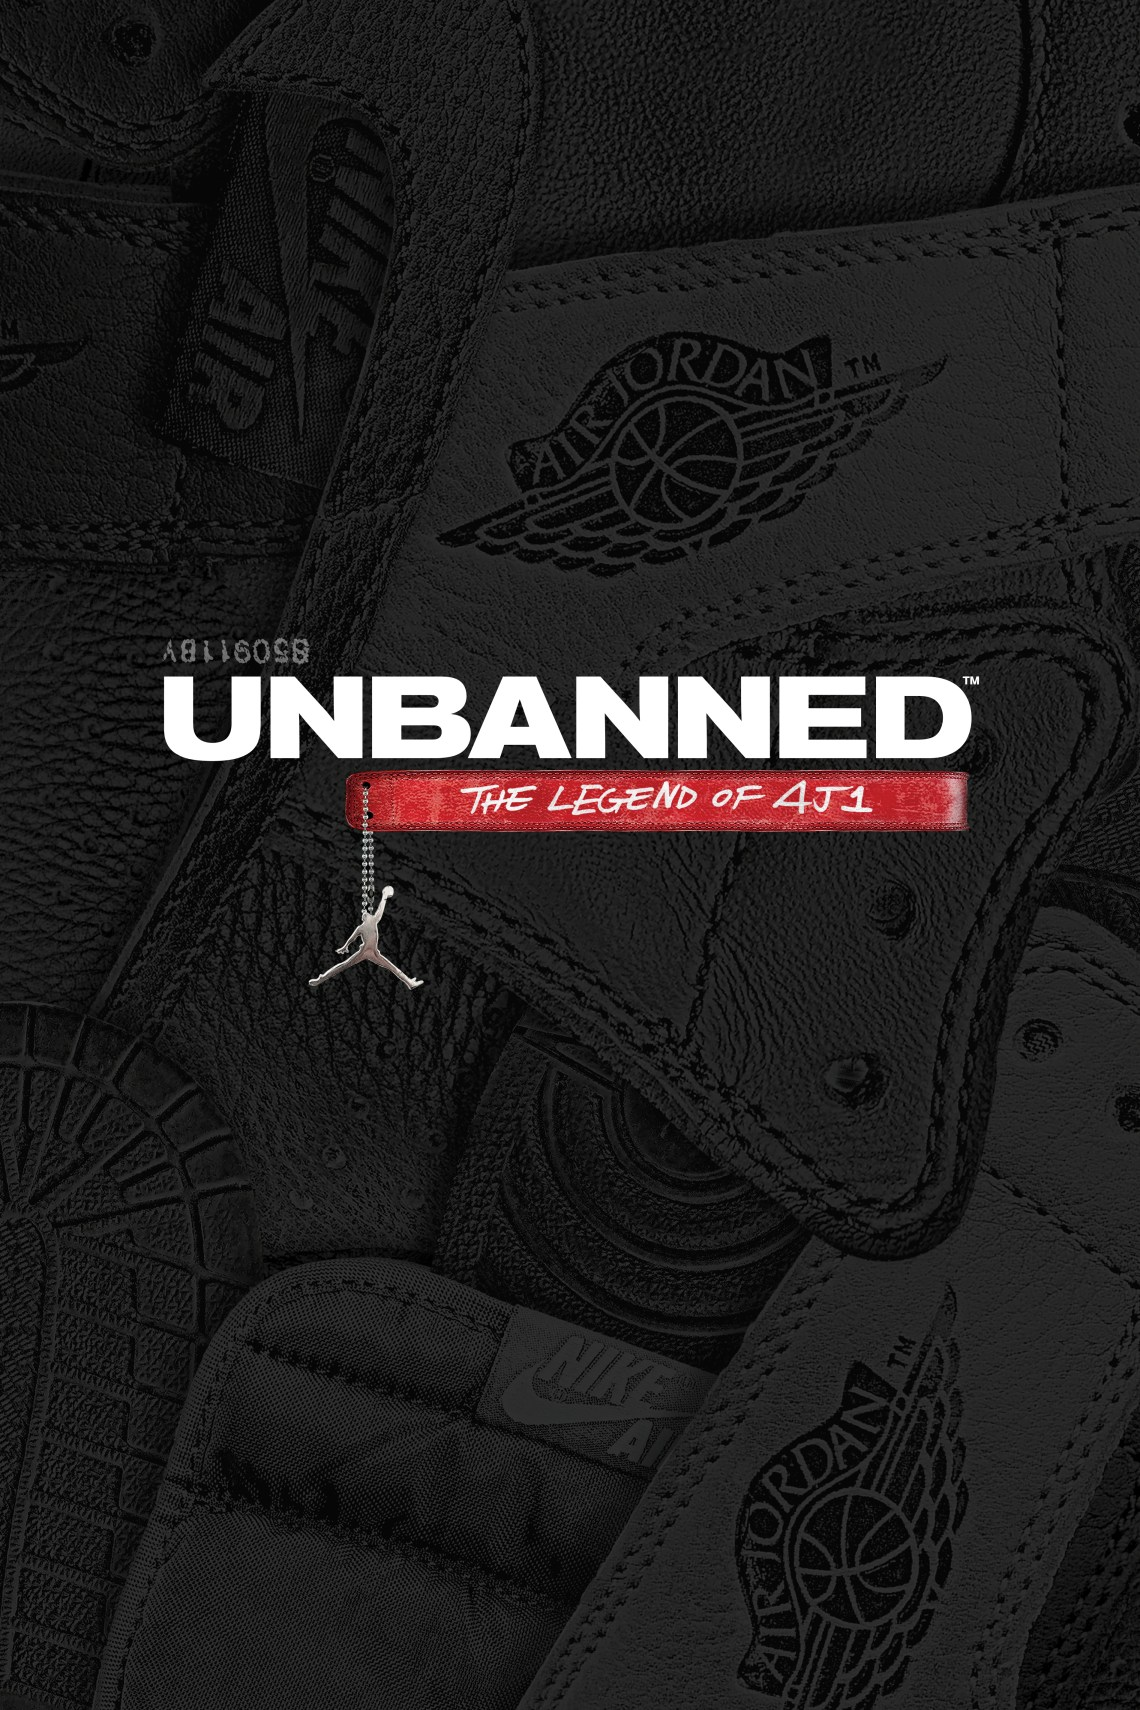 676fc65552a0 The Magic and Urban Legend of Air Jordans revisited with Unbanned  The  Legend of AJ1